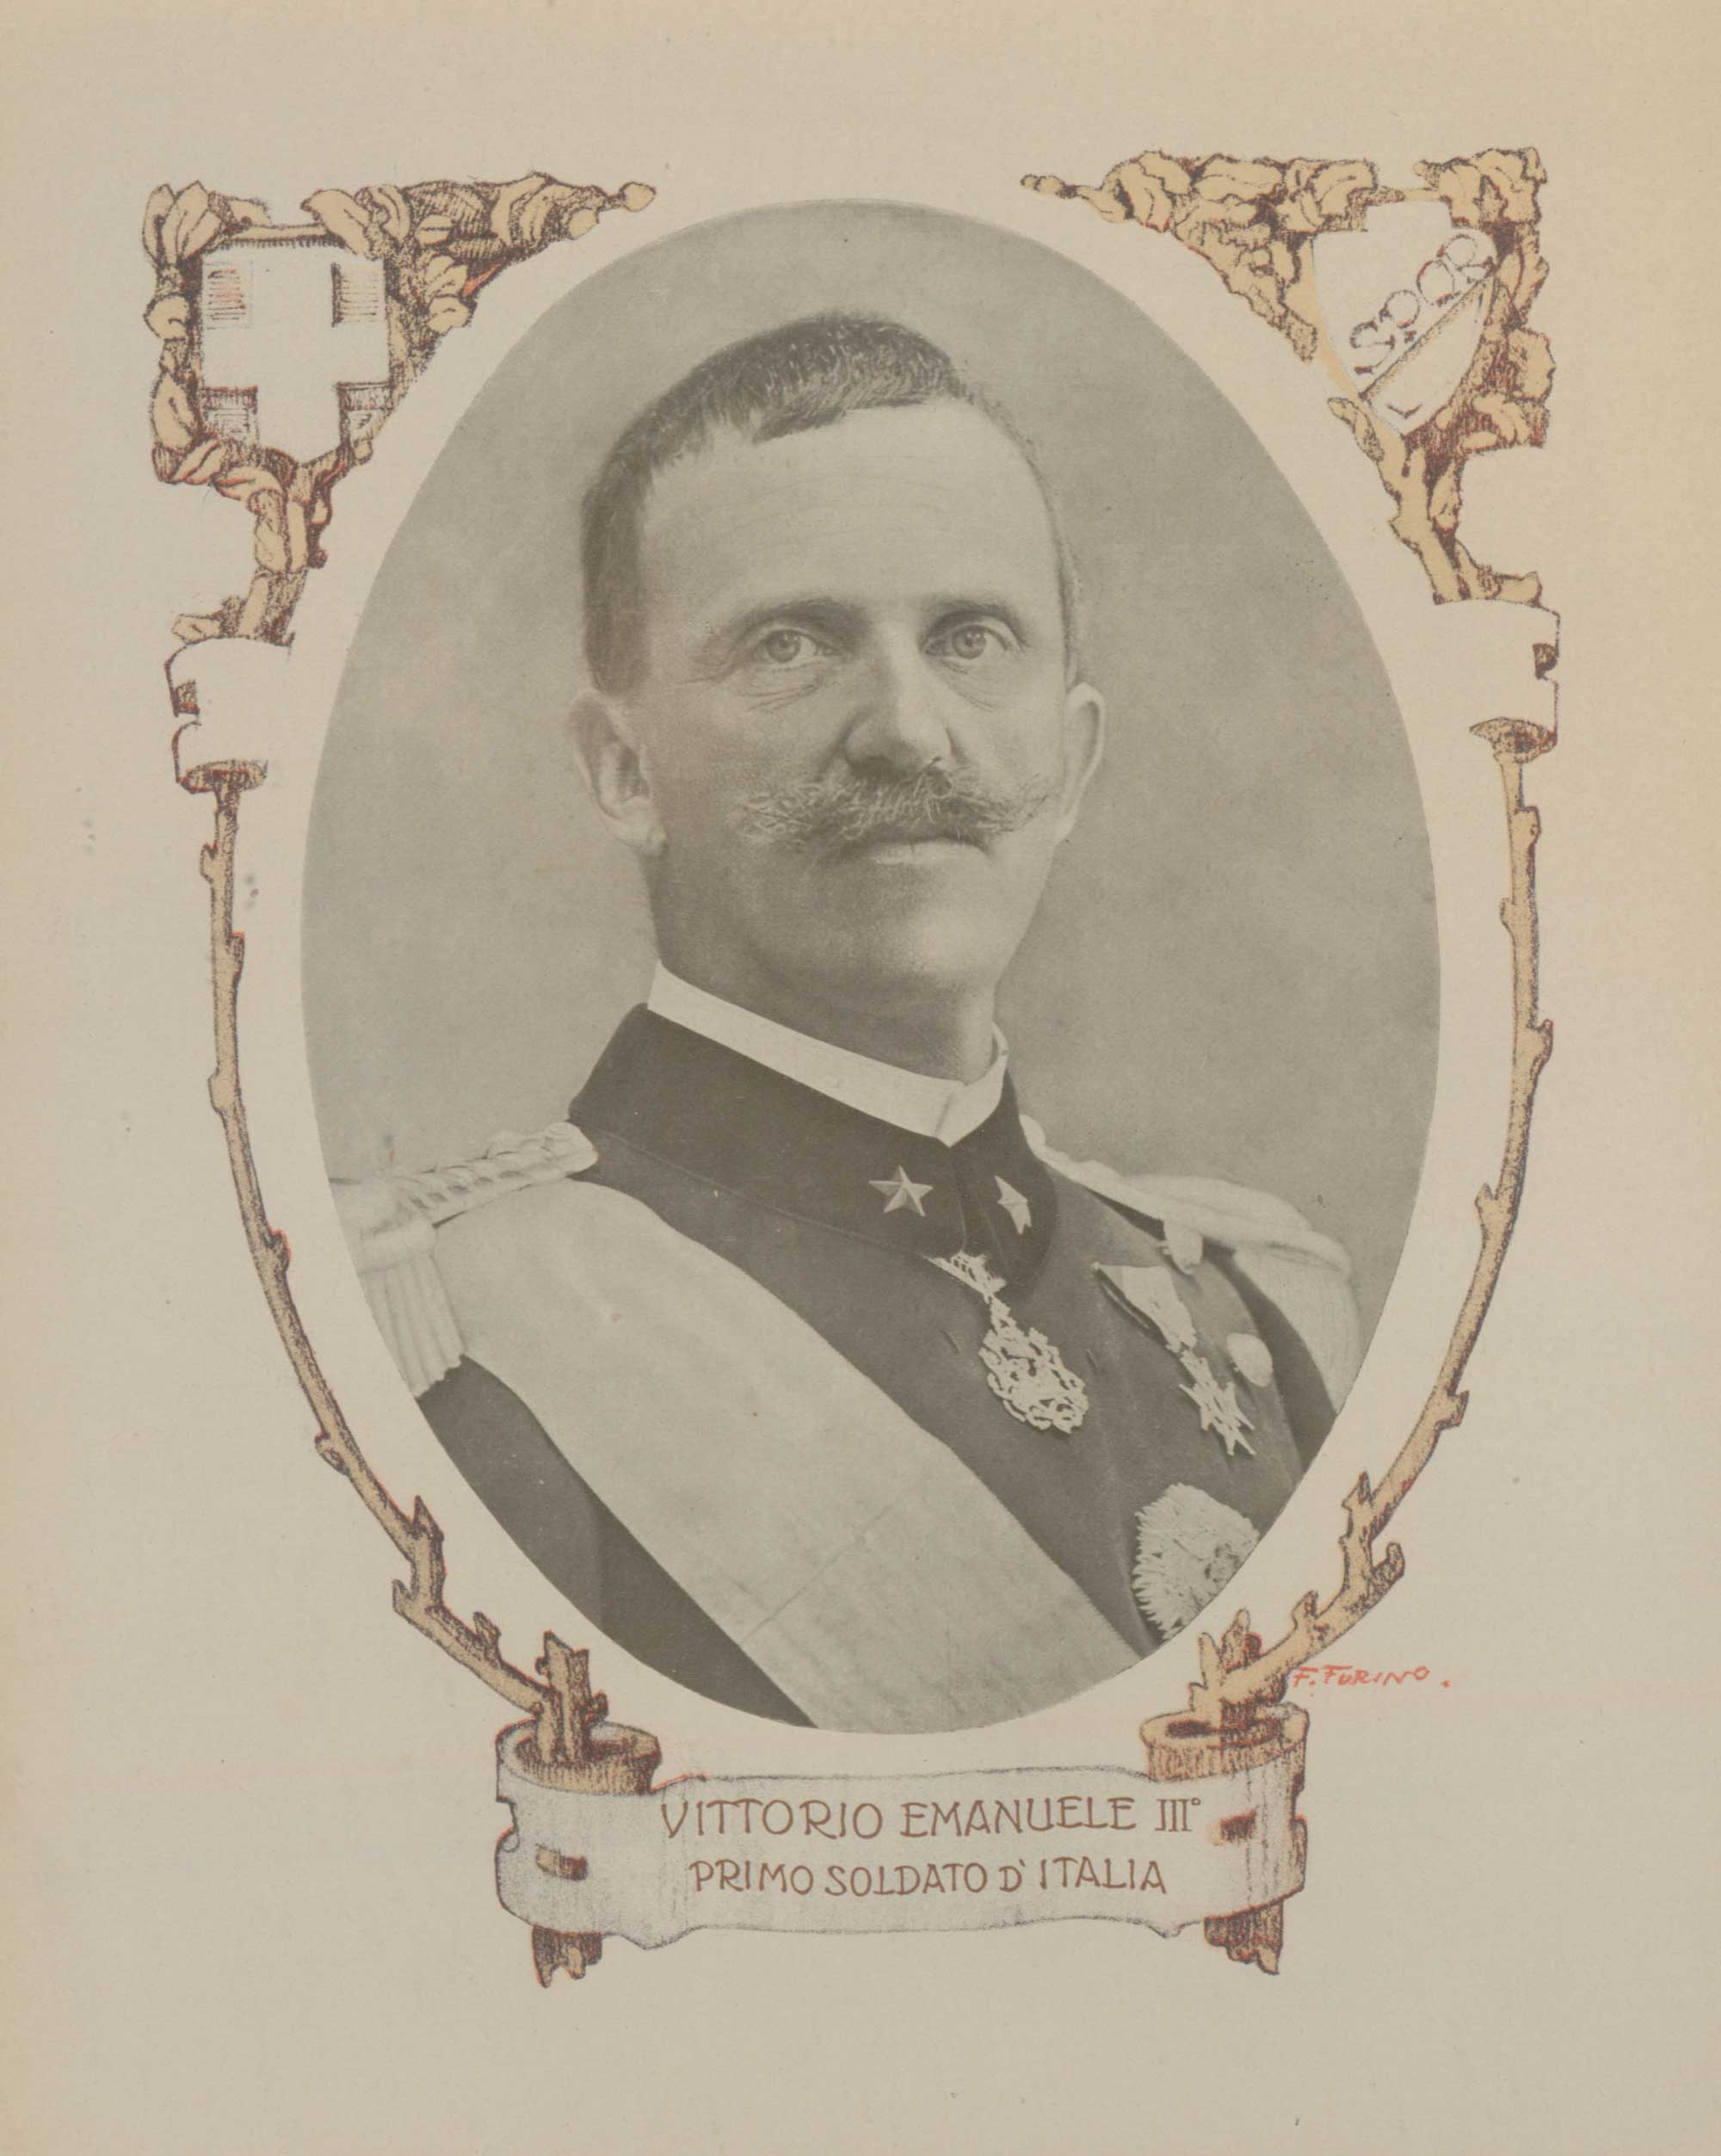 Vittorio Emanuele III. First soldier of Italy